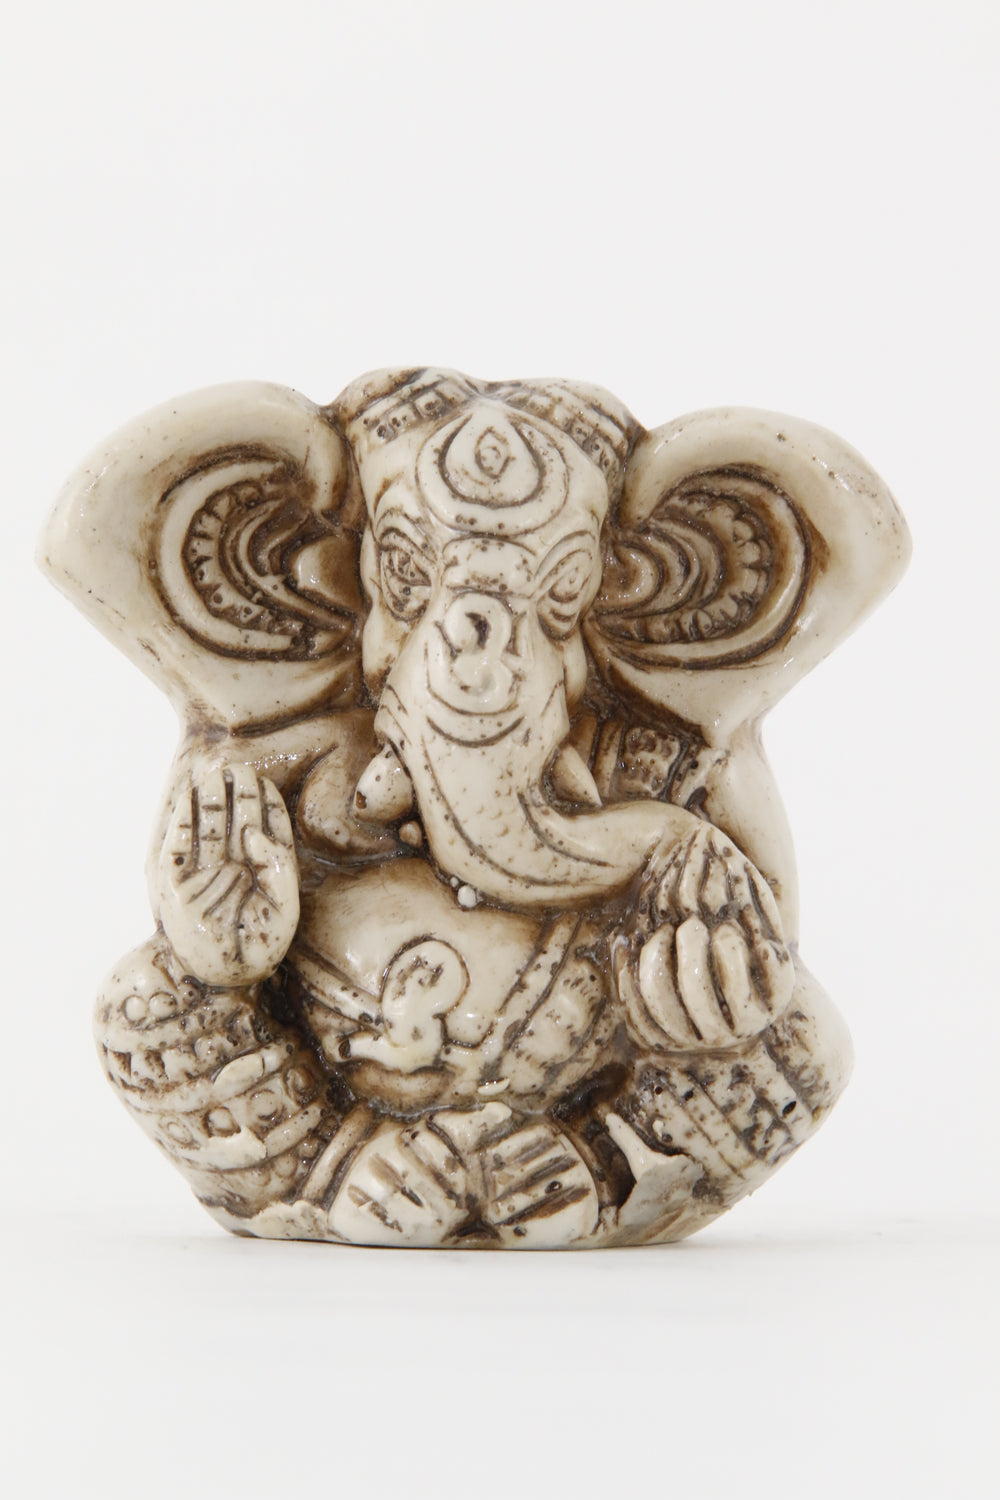 GANESHA BIG EAR STATUE OFFWHITE SMALL SIZE FRONT VIEW